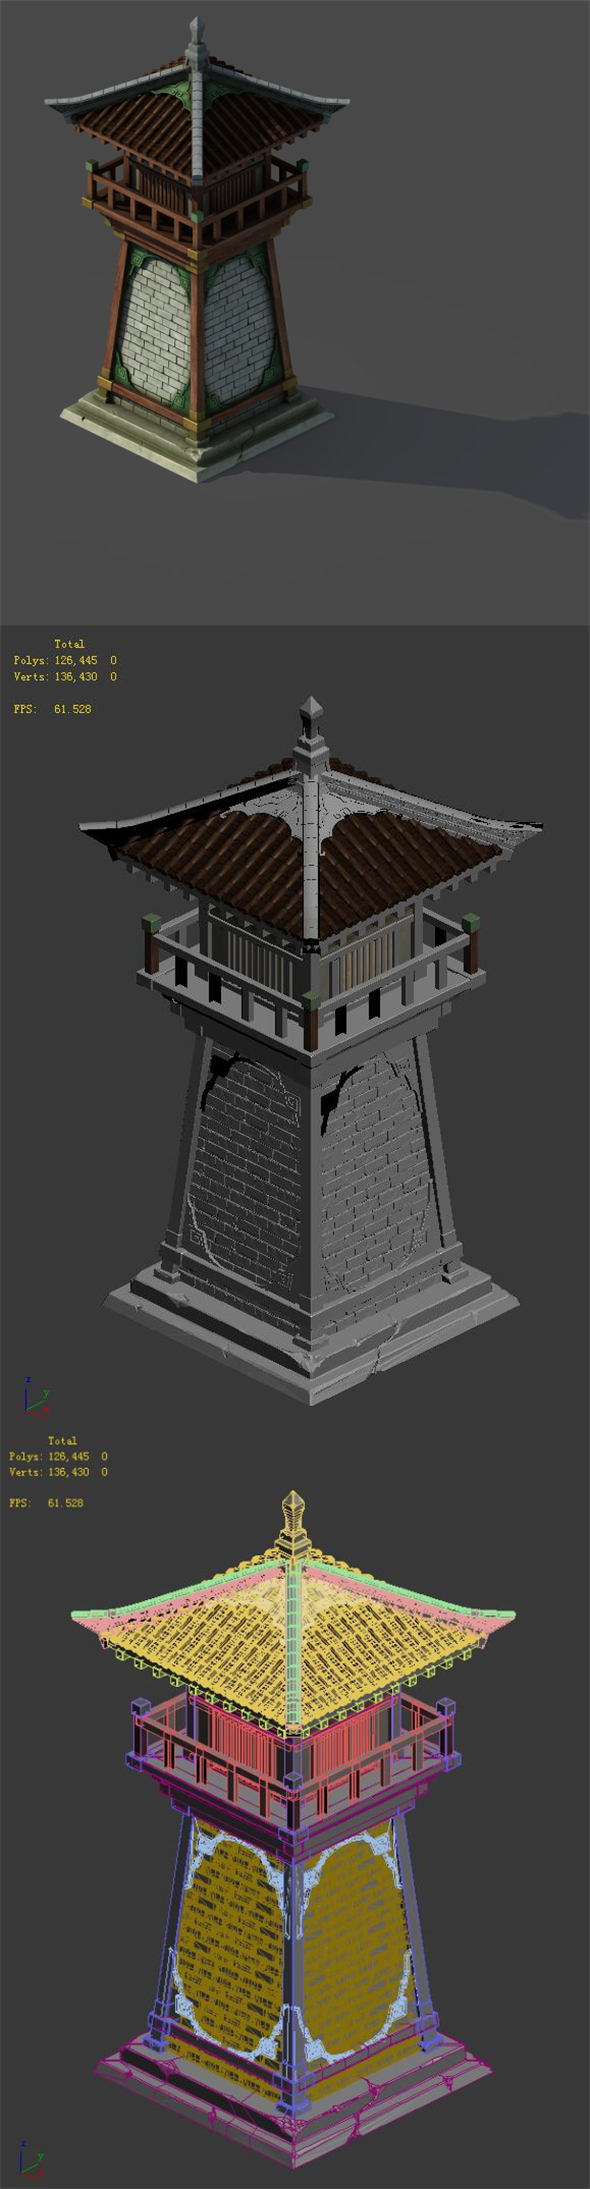 Gang building - tower - 3DOcean Item for Sale